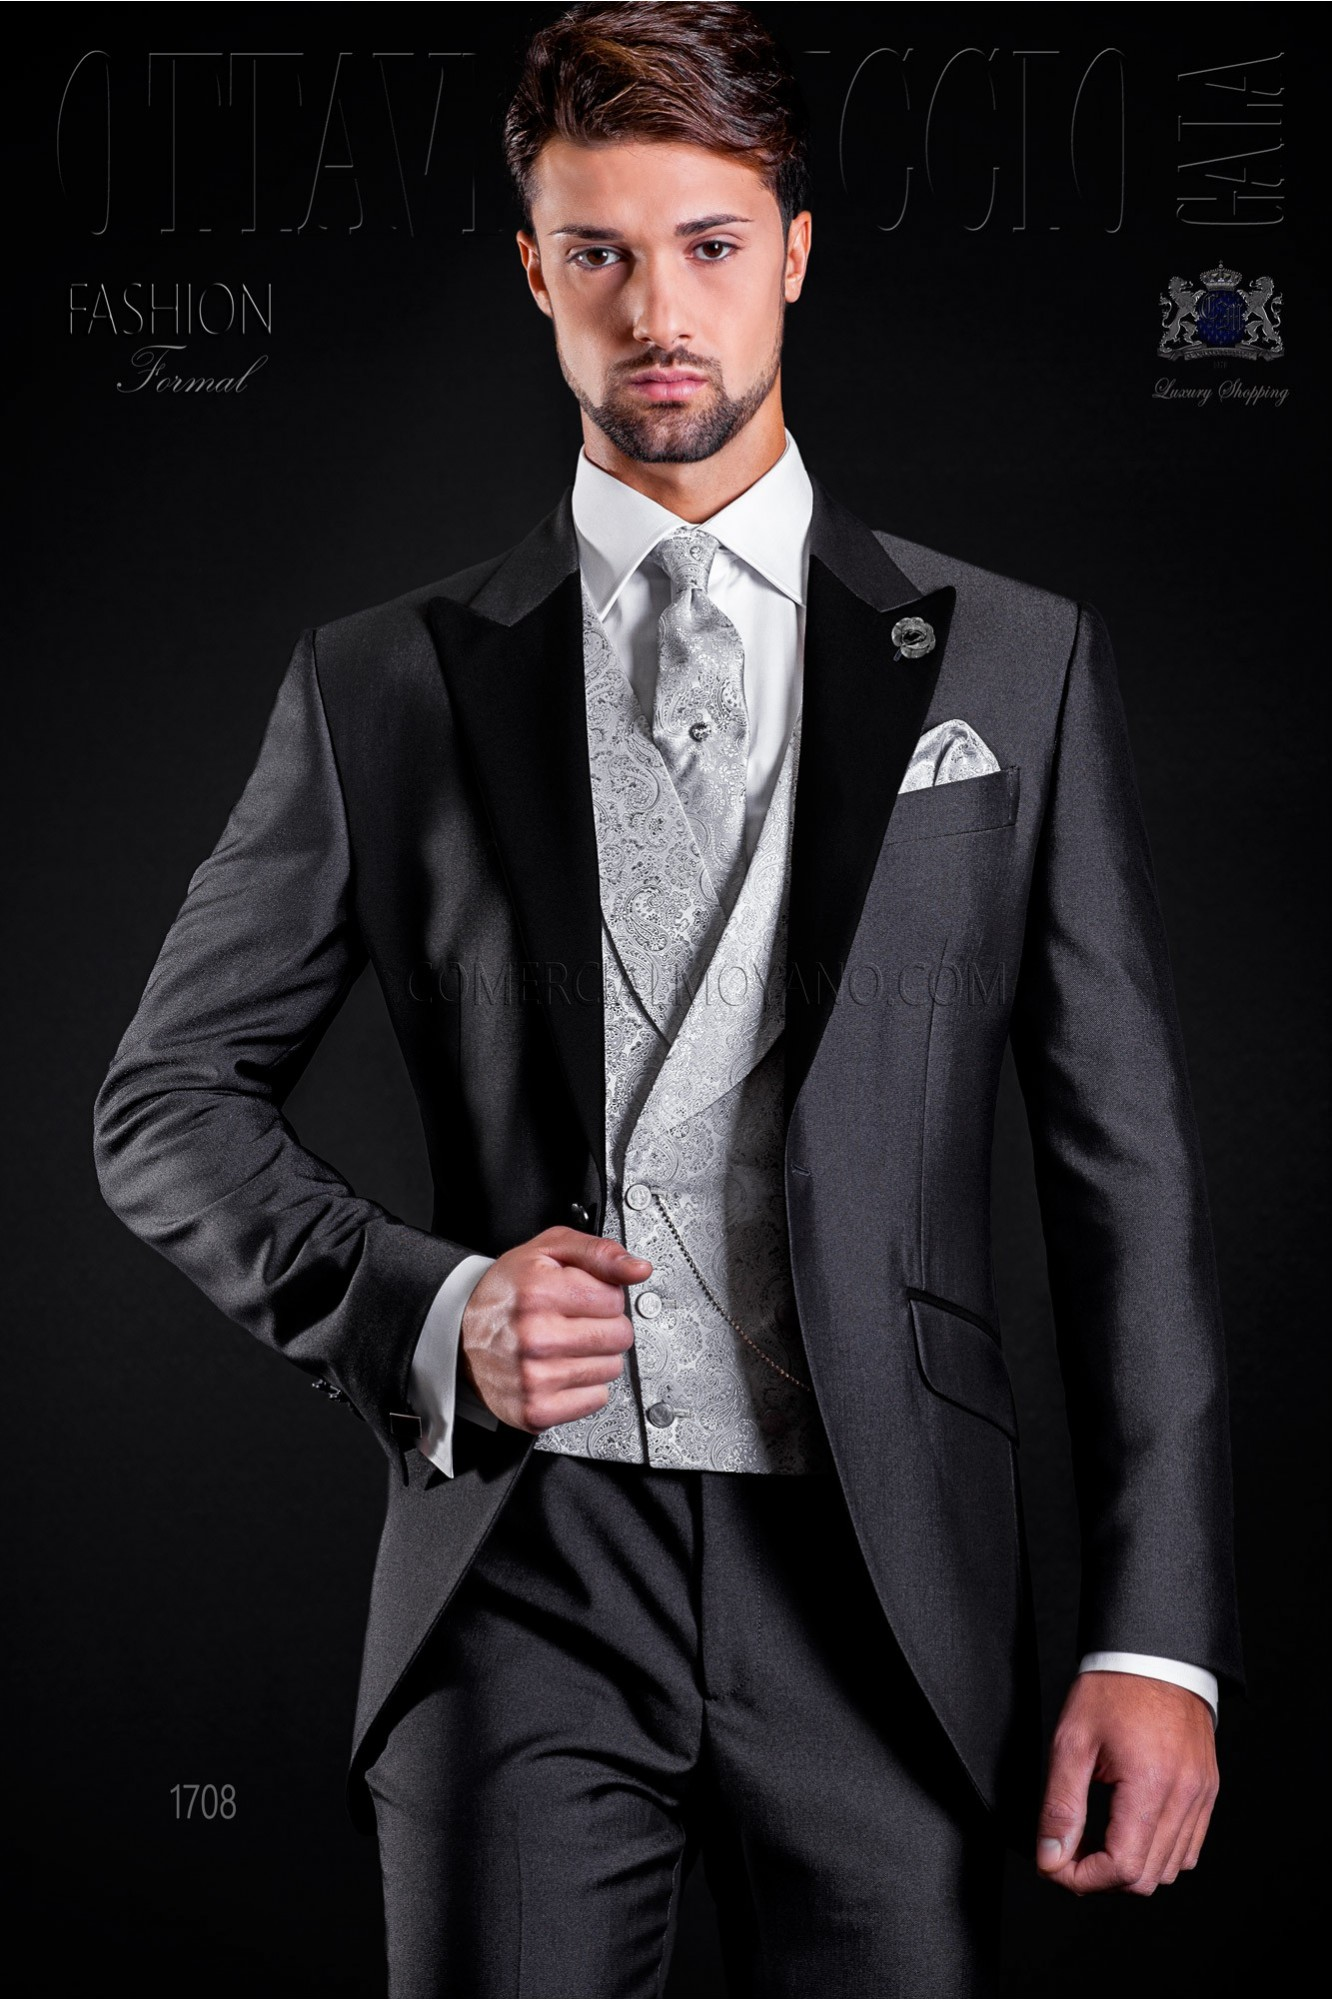 Wedding suit anthracite grey with black peak lapels